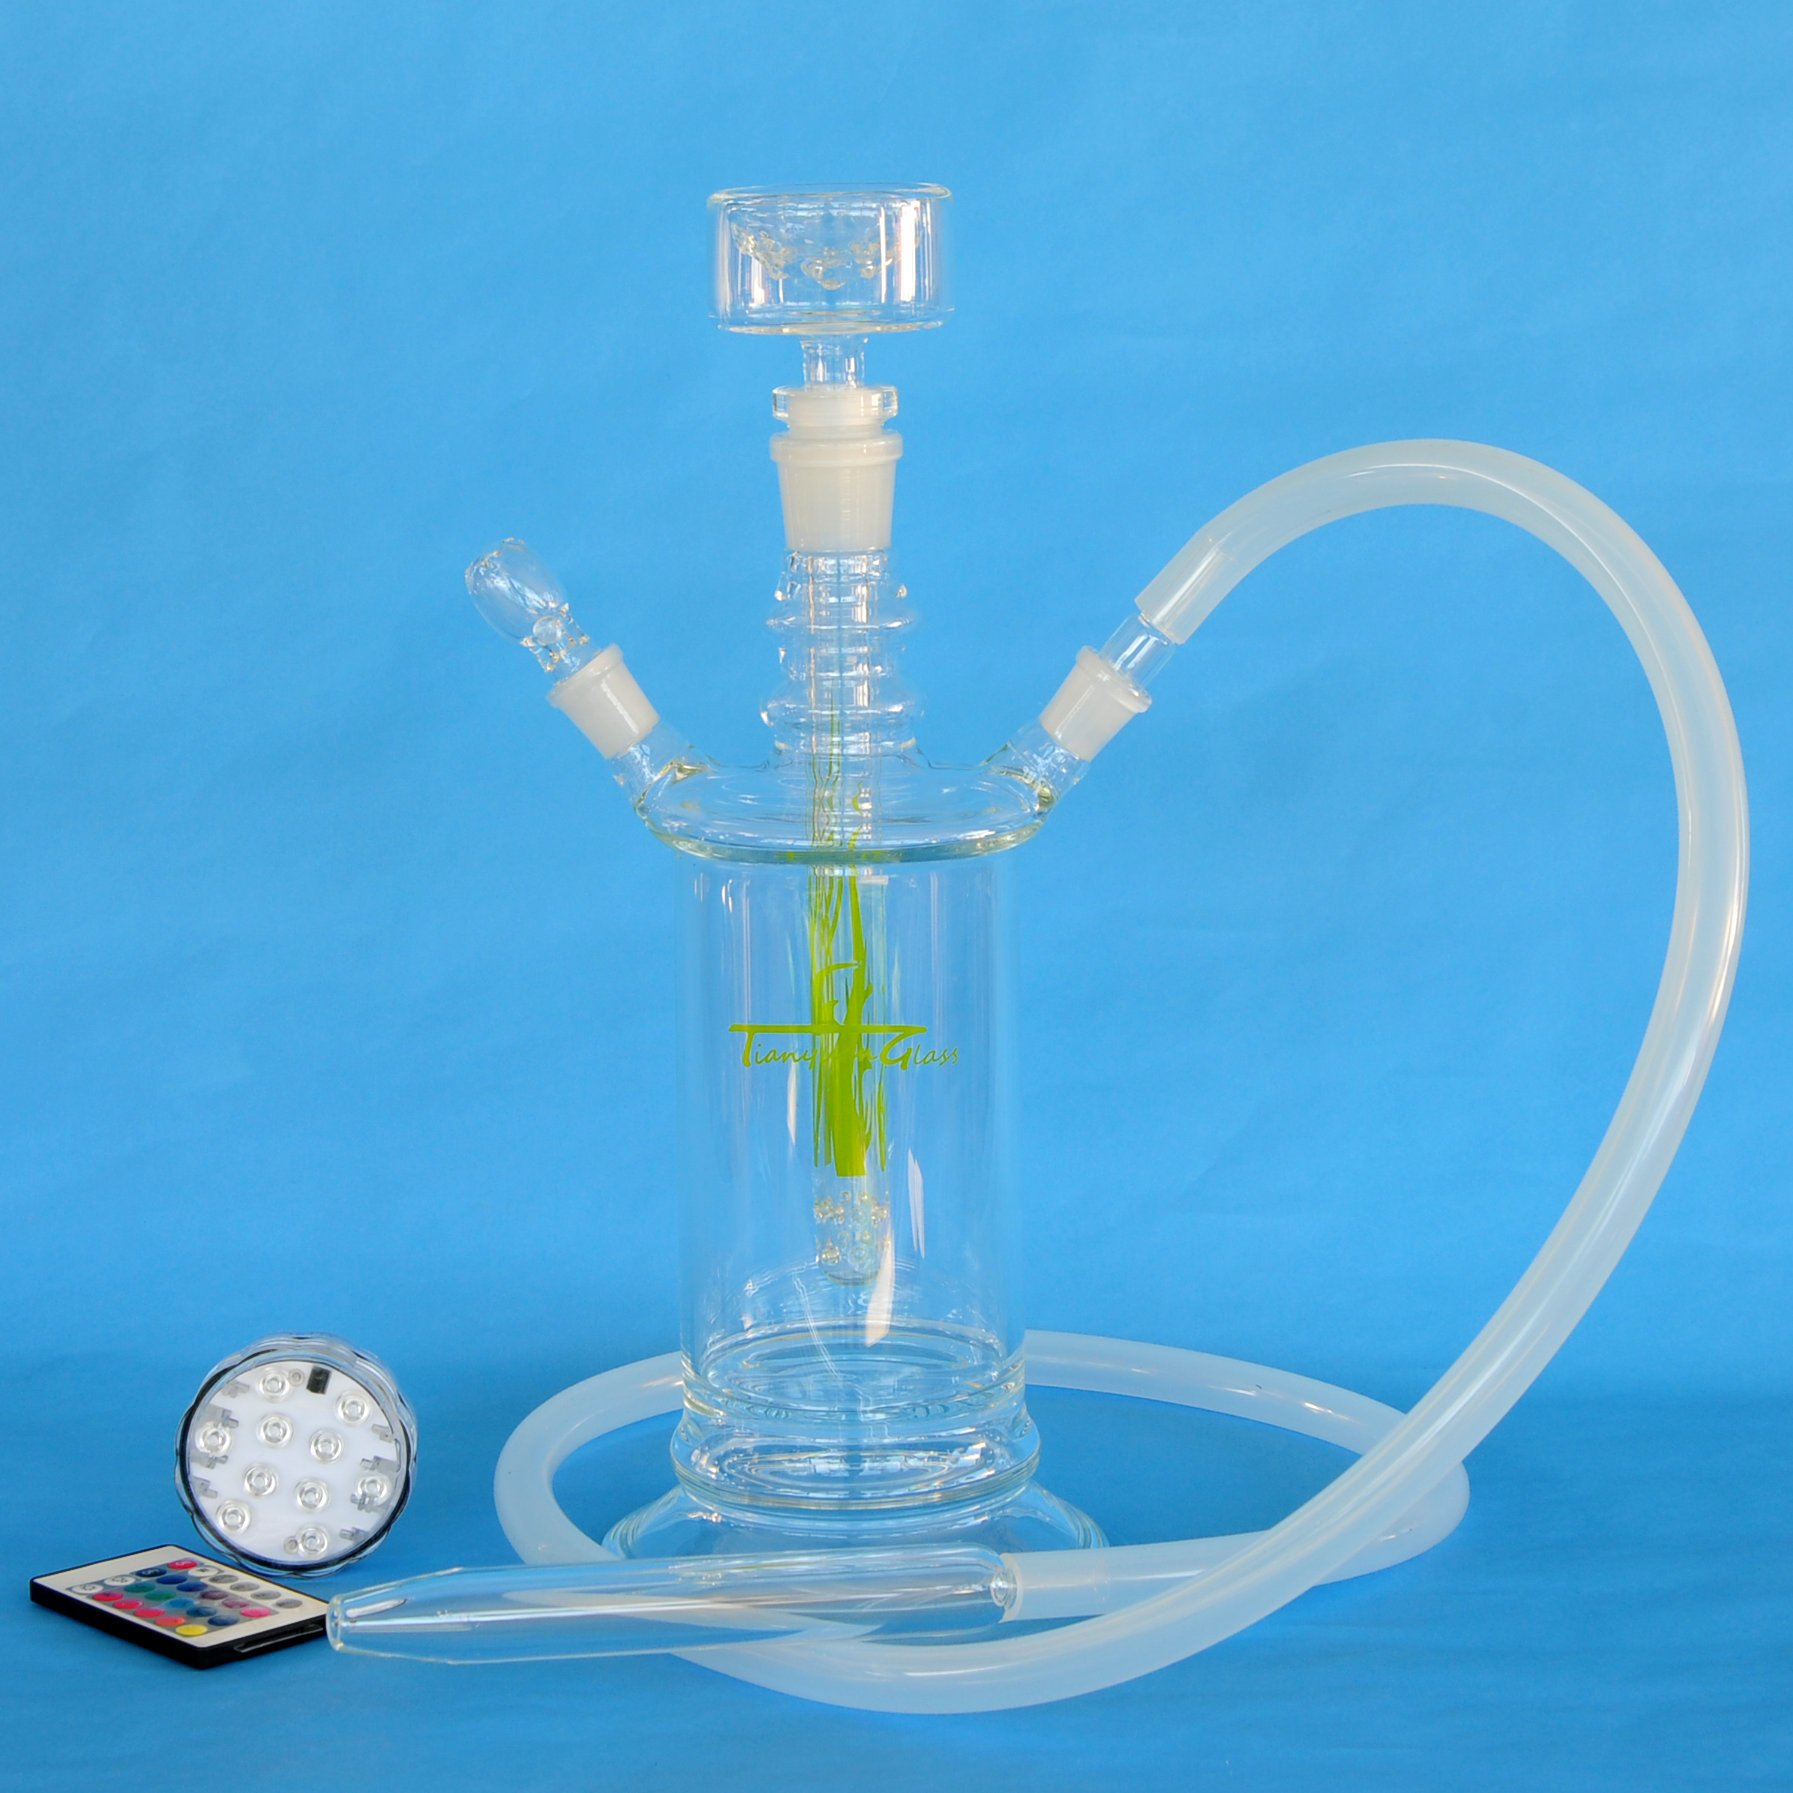 Tianyuan Glass All Glass Hookah Shisha 14'' with 4 Colors LED Light Base and Travel Code Case, Light Green (TY-HK15-CH) by Tianyuan (Image #1)